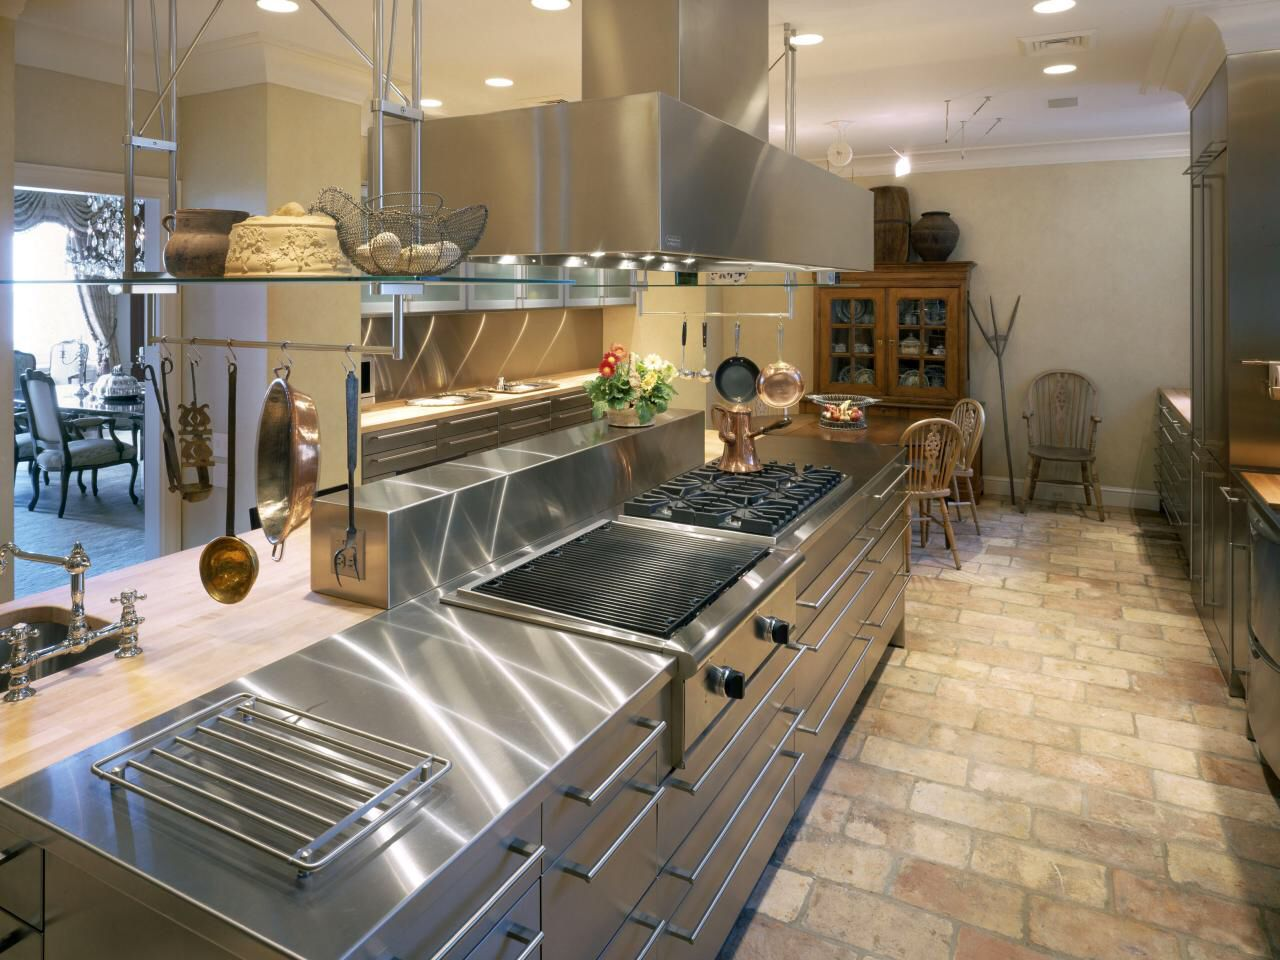 A Unique Kitchen With Stainless Steel Cabinets And Brick Floors The